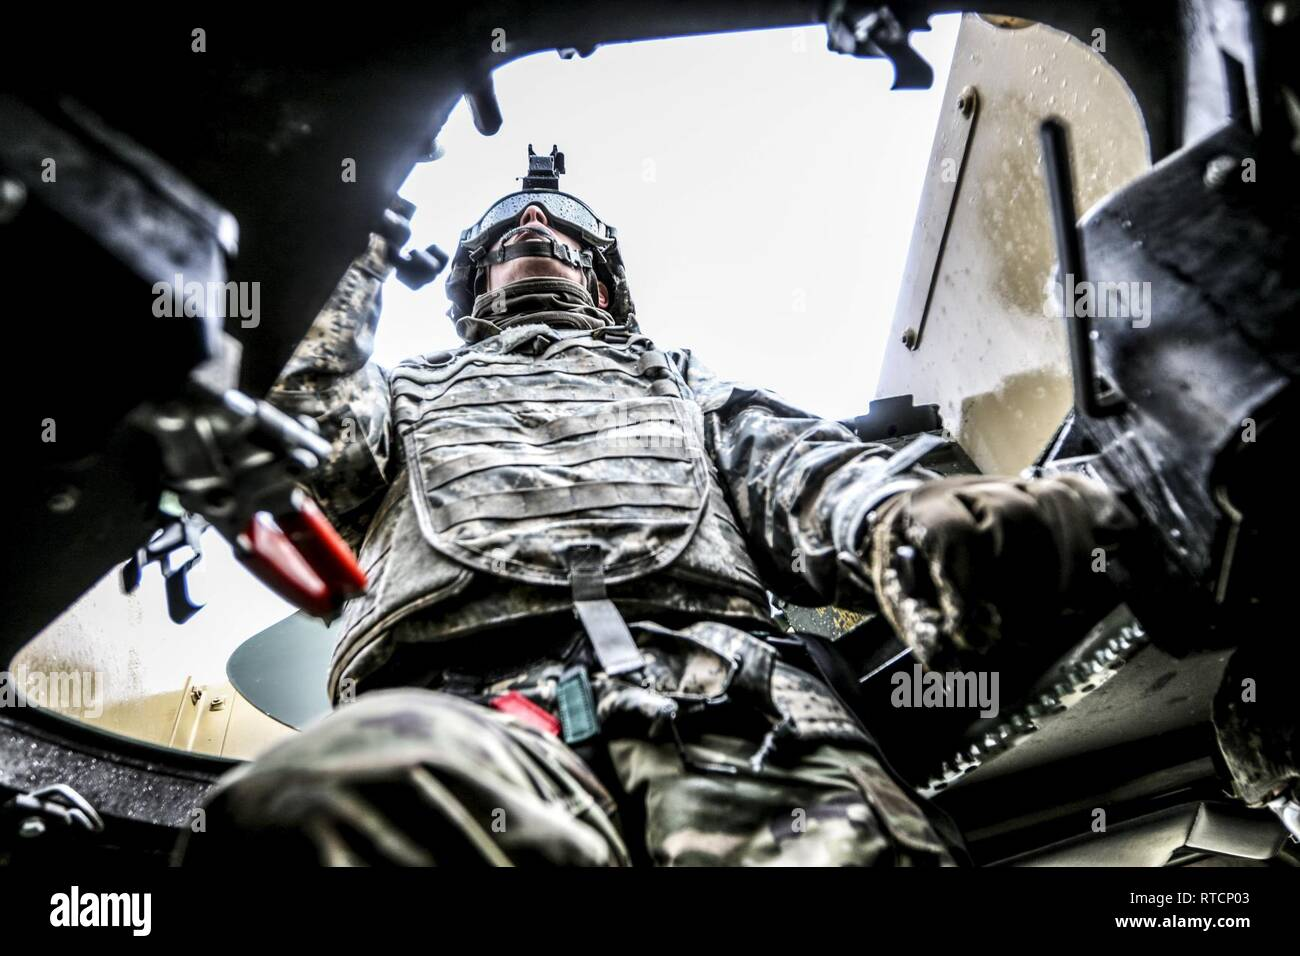 U.S. Army Reserve Spc. Forrest Bohlman, wheeled vehicle mechanic, 452nd Quartermaster Company, trains as a gunner during Operation Cold Steel III at Fort Hunter Liggett, Calif., Feb. 14, 2019. Operation Cold Steel III trains and qualifies Army Reserve Soldiers on M2 .50 caliber machine guns, M19 40 mm automatic grenade launchers and M240 7.62 mm machine guns weapons systems in ground and mounted military vehicles, in order to provide lethal and combat ready units ready to deploy anywhere in the world. - Stock Image